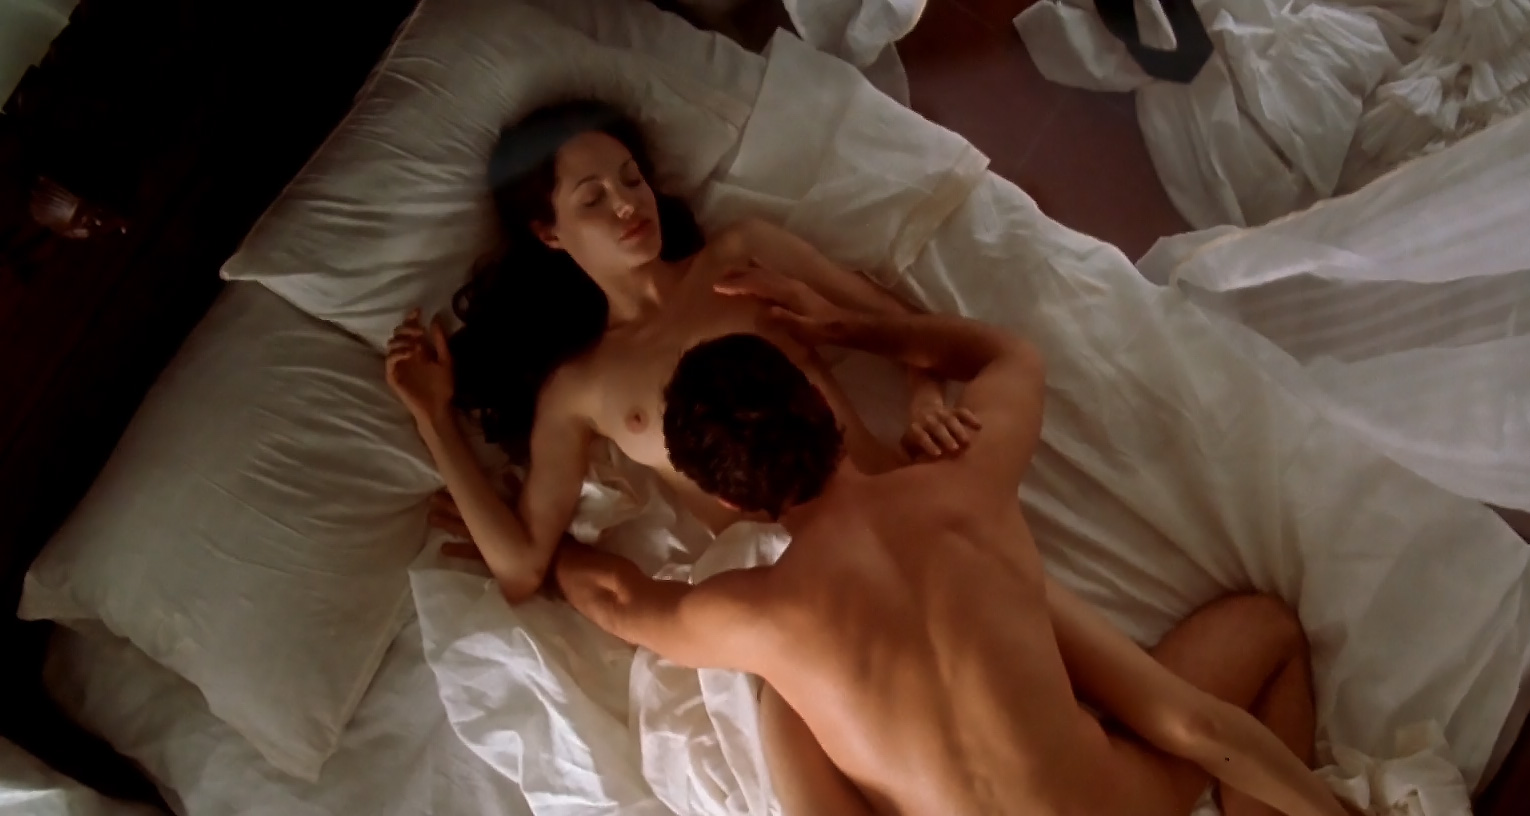 Angelinia jolie sex tape for iphone